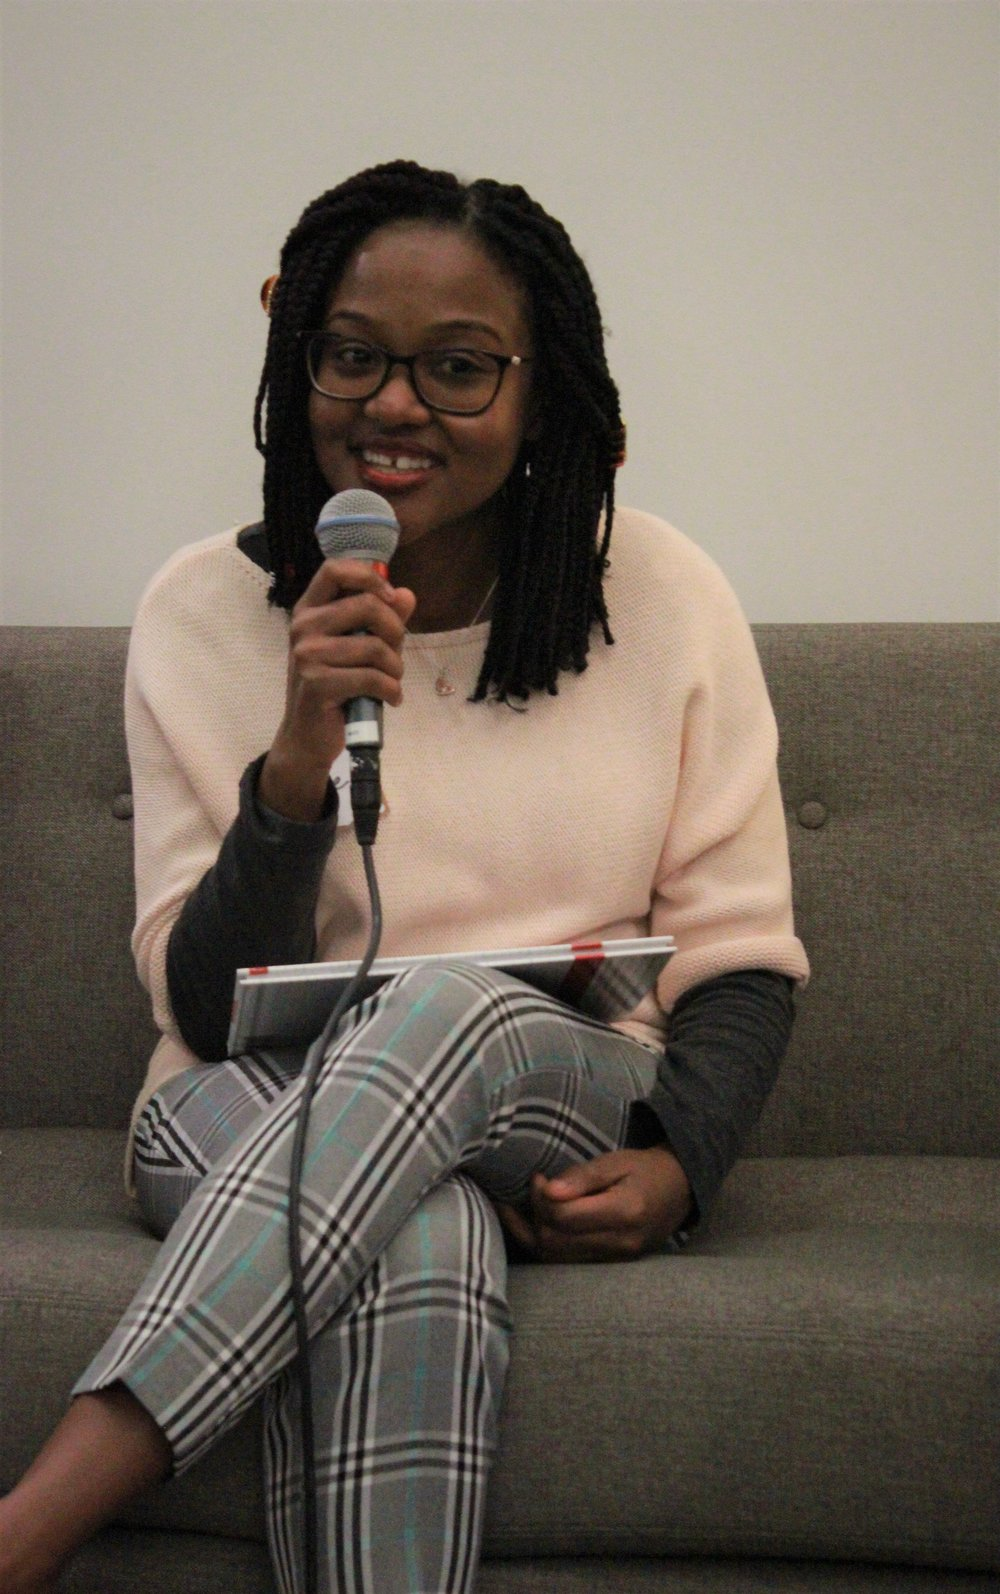 PDXWIT Creative Women in Tech @ R2C, 3/27/19, Arlyne Simon - Systems Engineer at Intel & children's book author - speaks